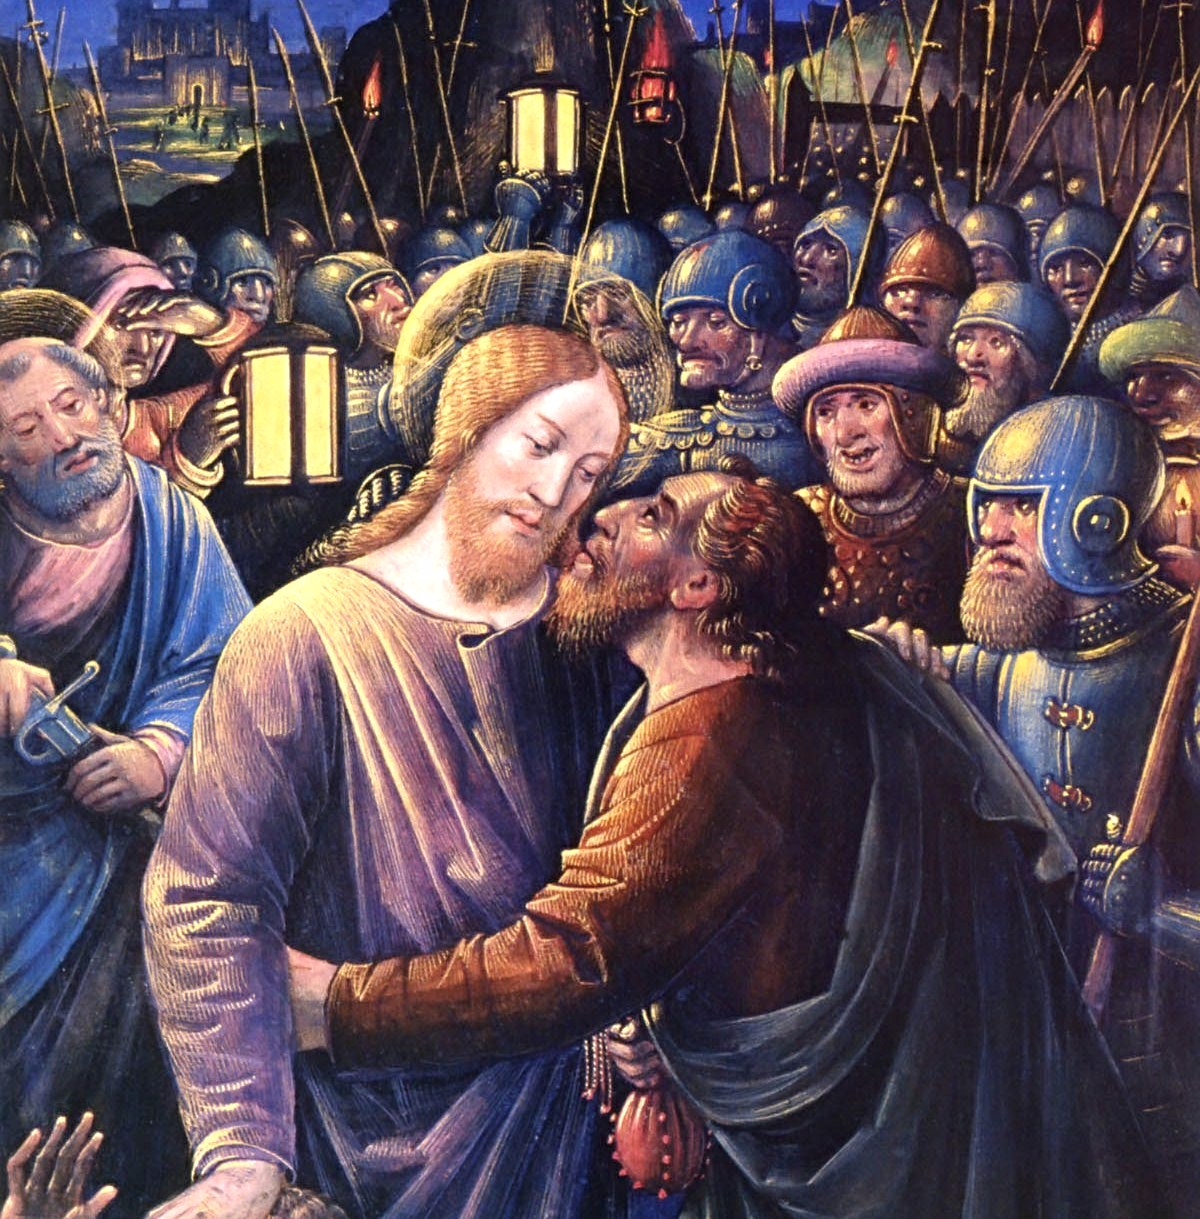 The Kiss of Judas, Jean Bourdichon c. 1500